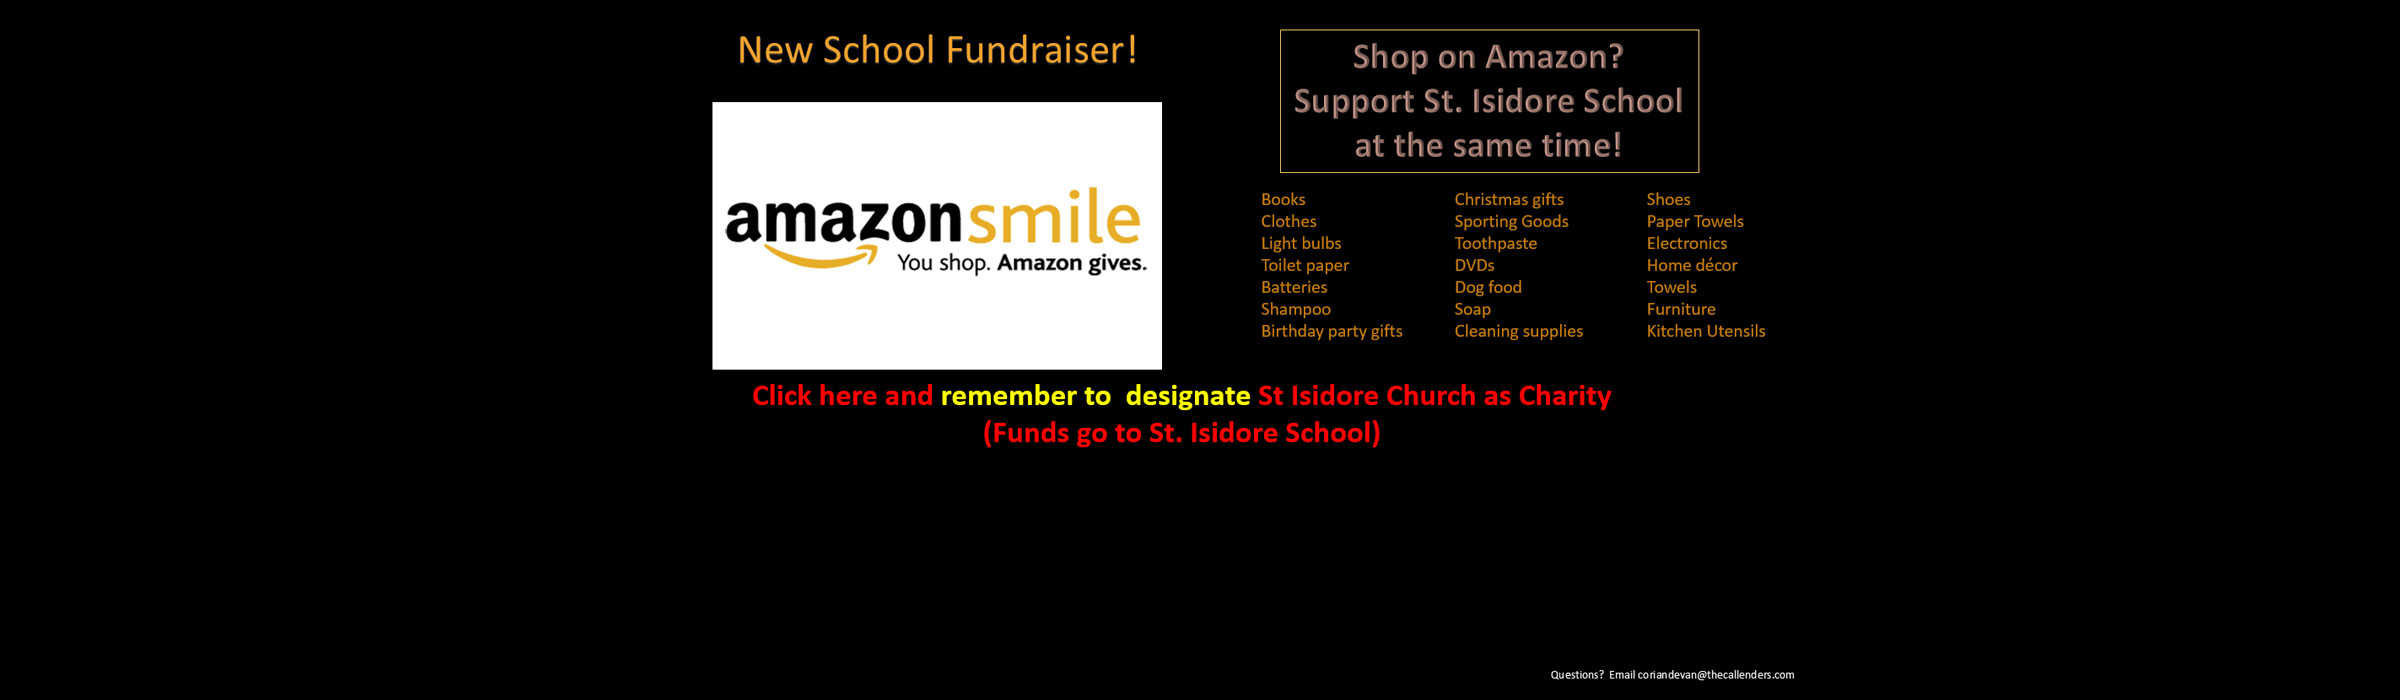 amazon-smile-slider-112315